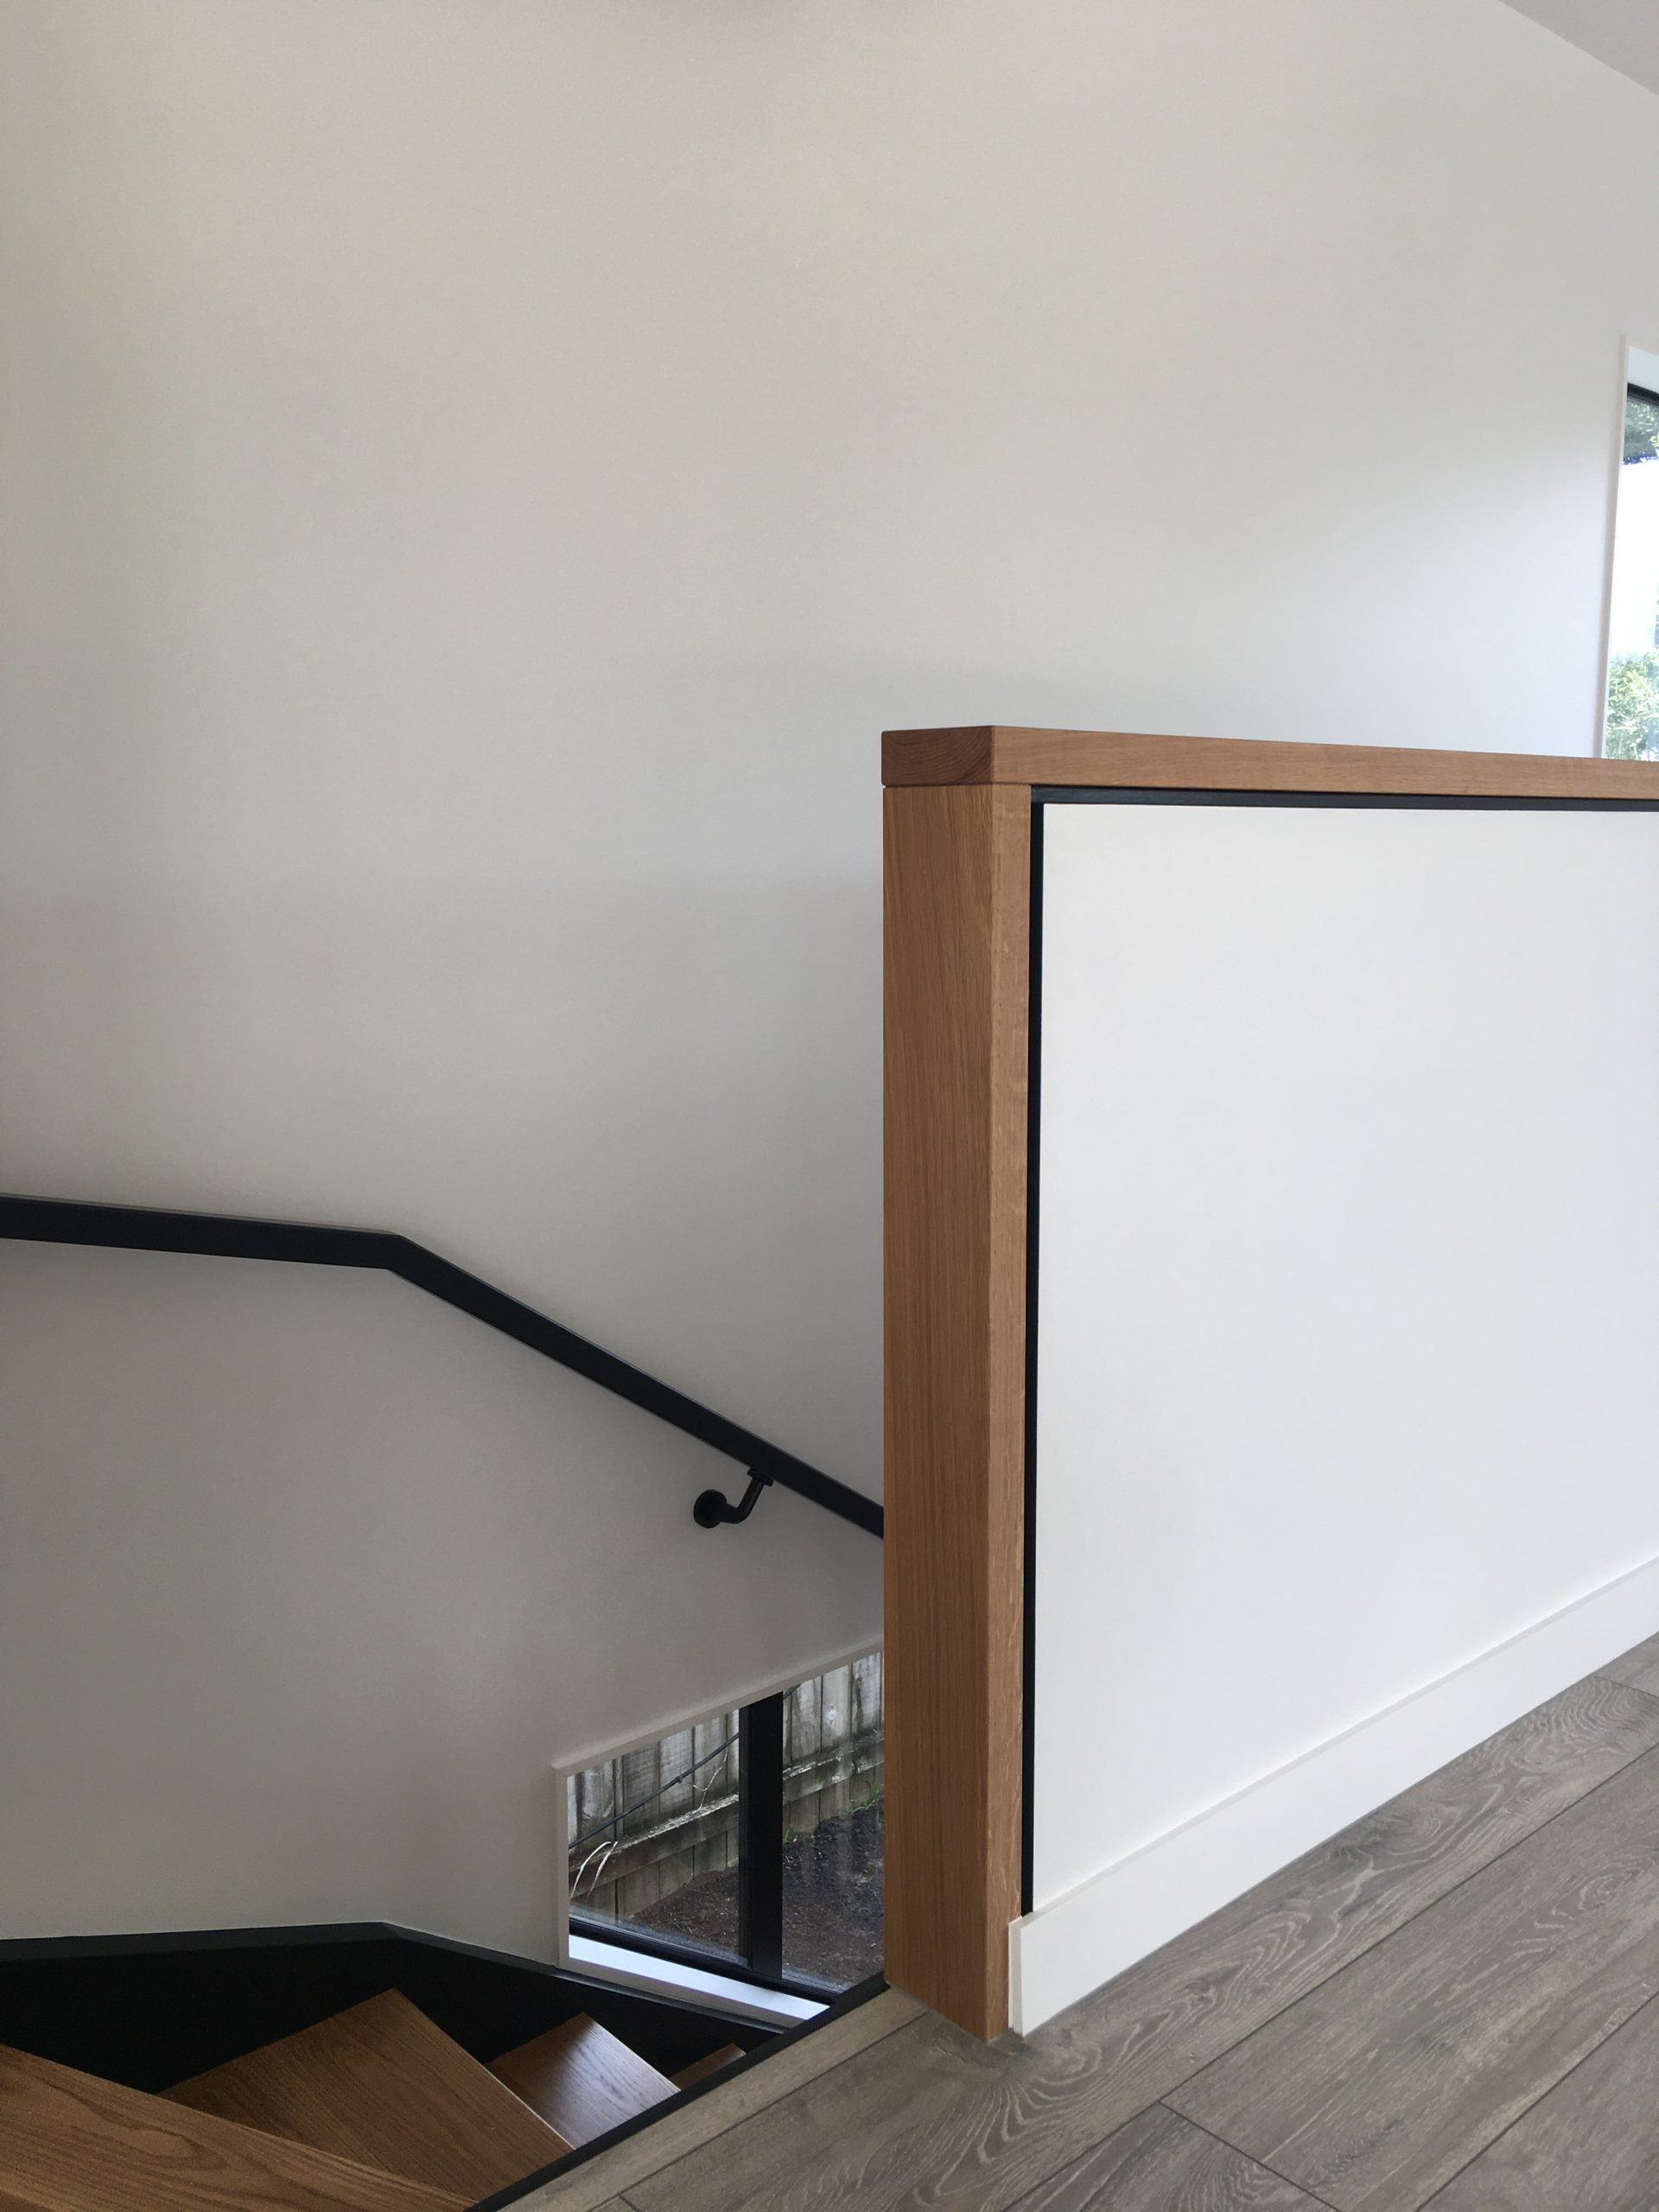 Home design details featuring custom balustrade with negative accent